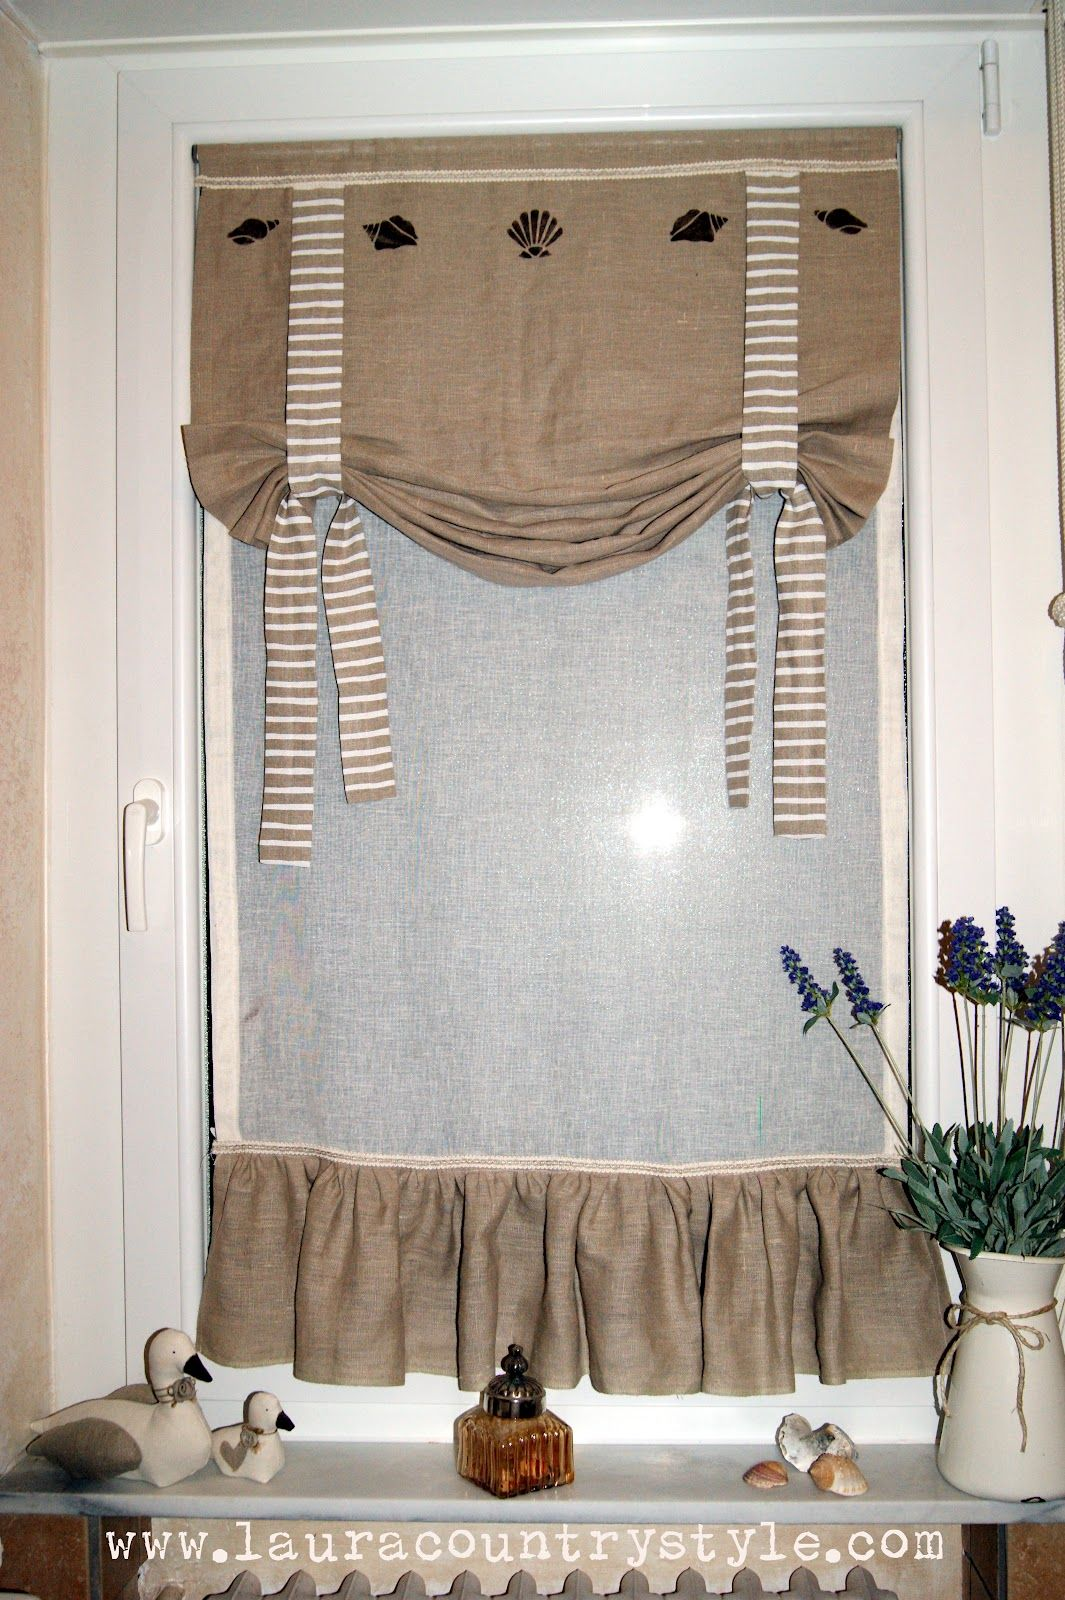 Tende da bagno cerca con google tende pinterest curtain ideas window and valance - Modelli tende da bagno ...